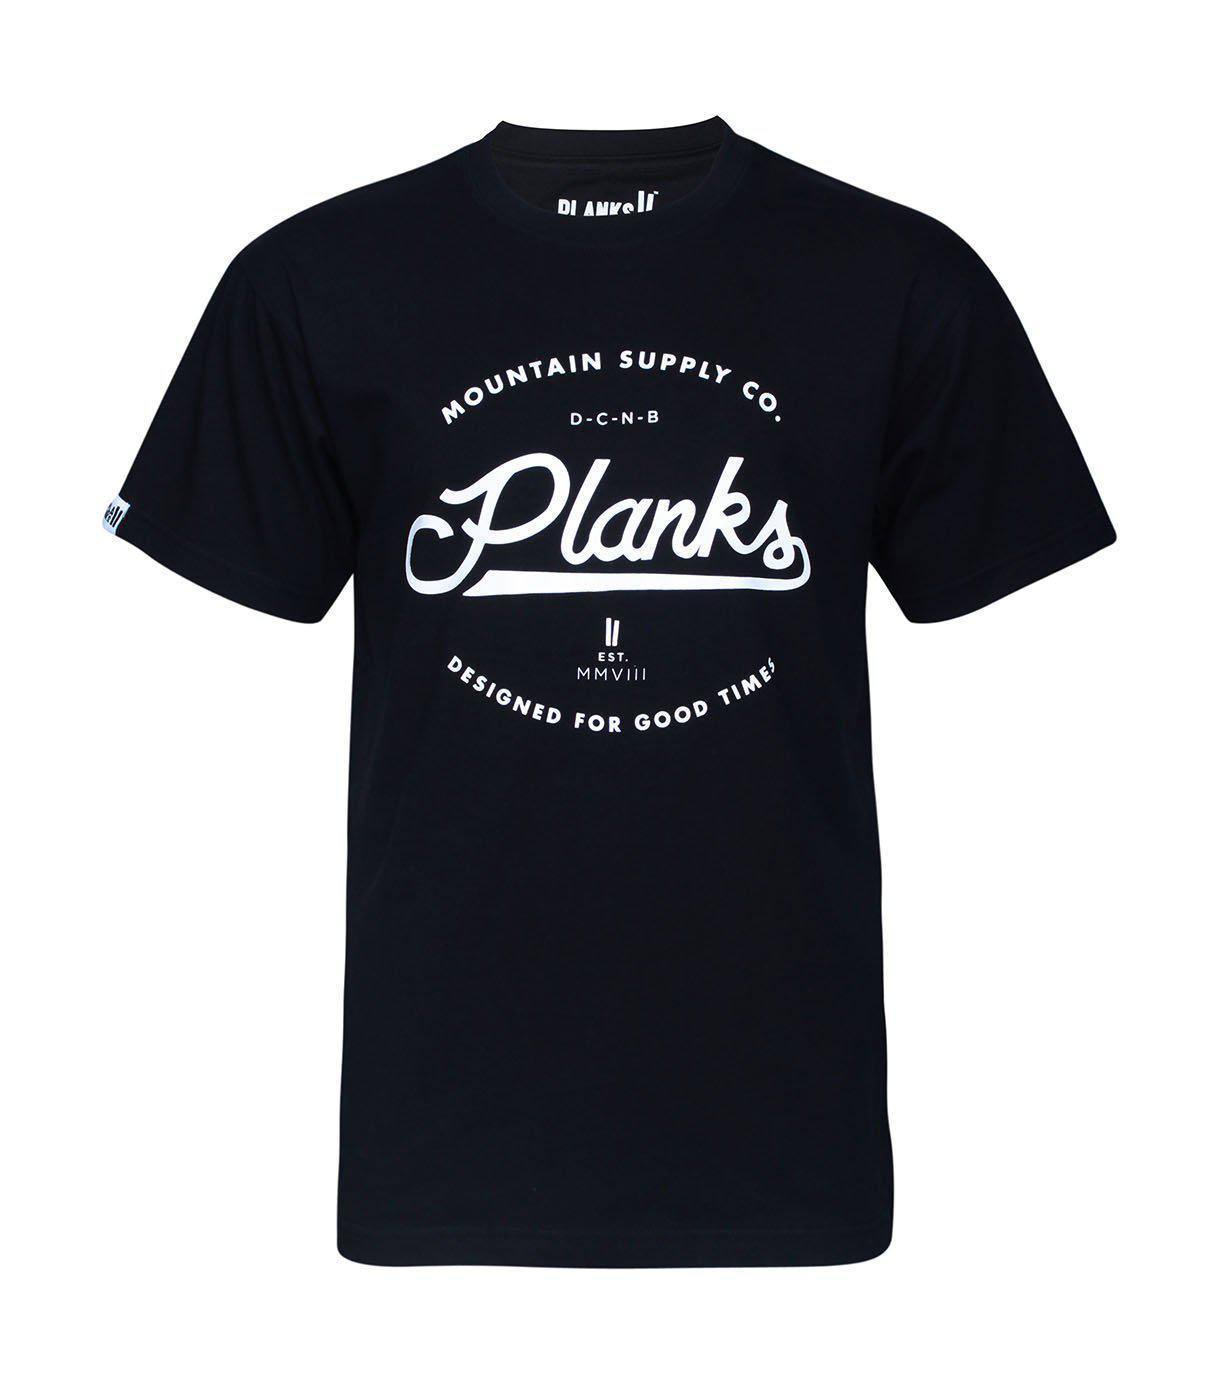 planks clothing – Planks mountain supply t-shirt fra blacksnow.dk